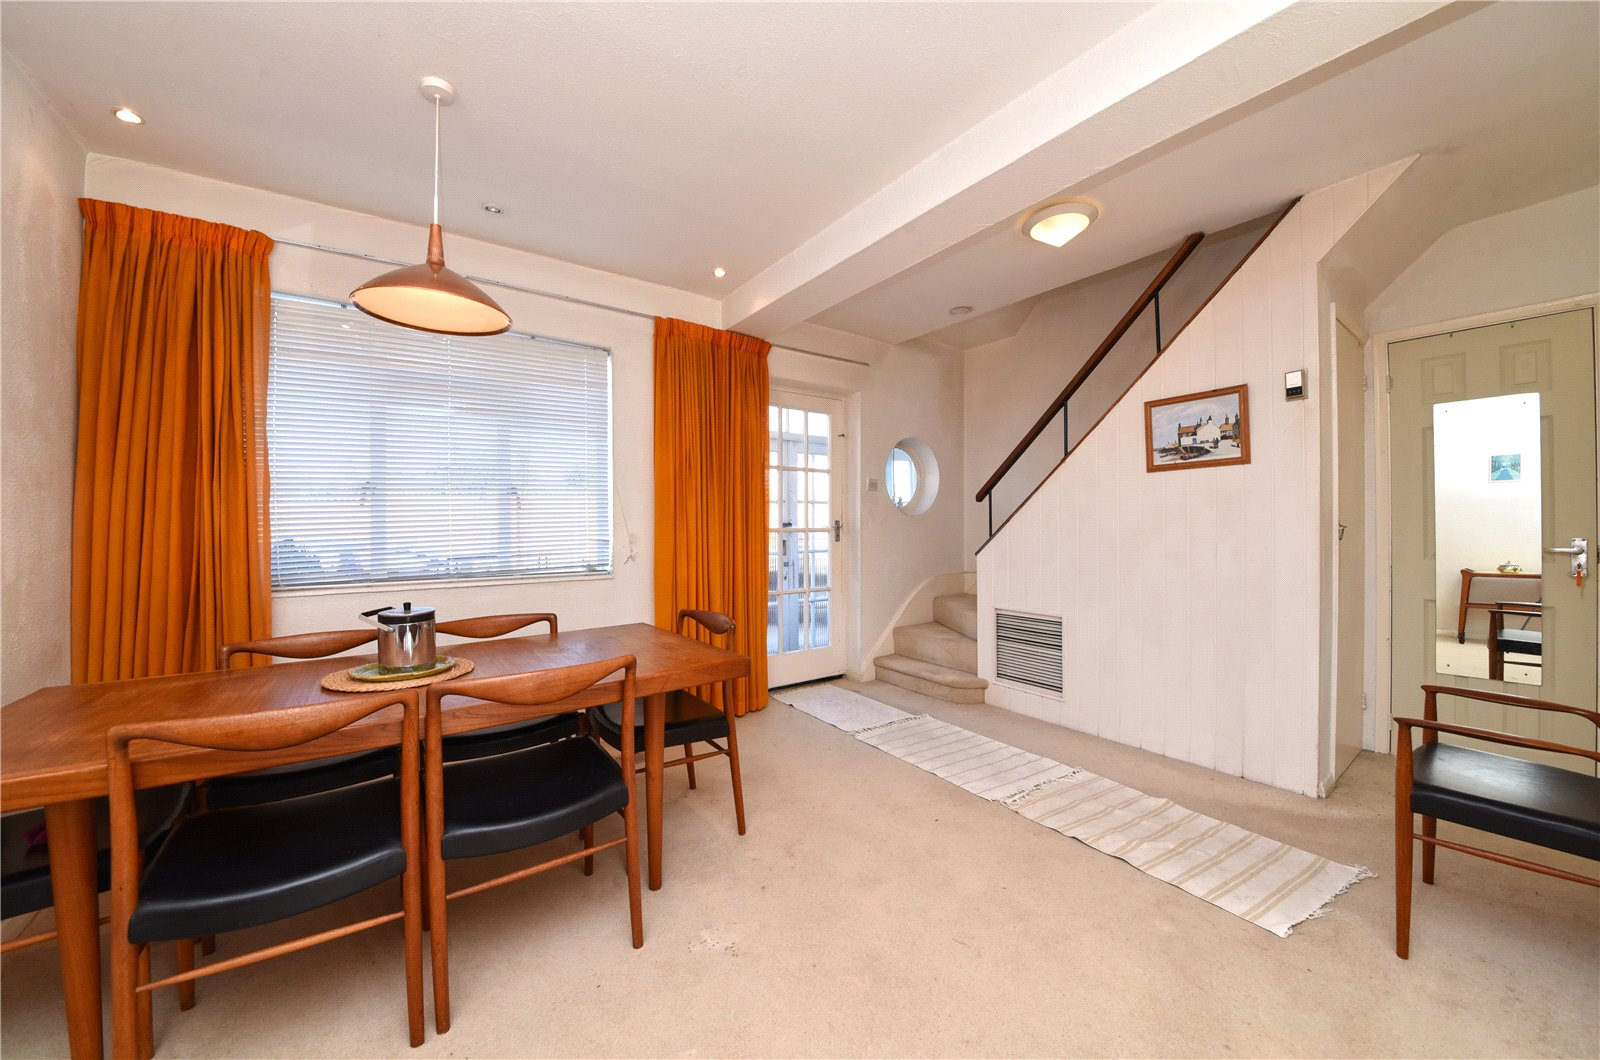 3 bed house for sale in West Finchley, N3 1PB  - Property Image 2